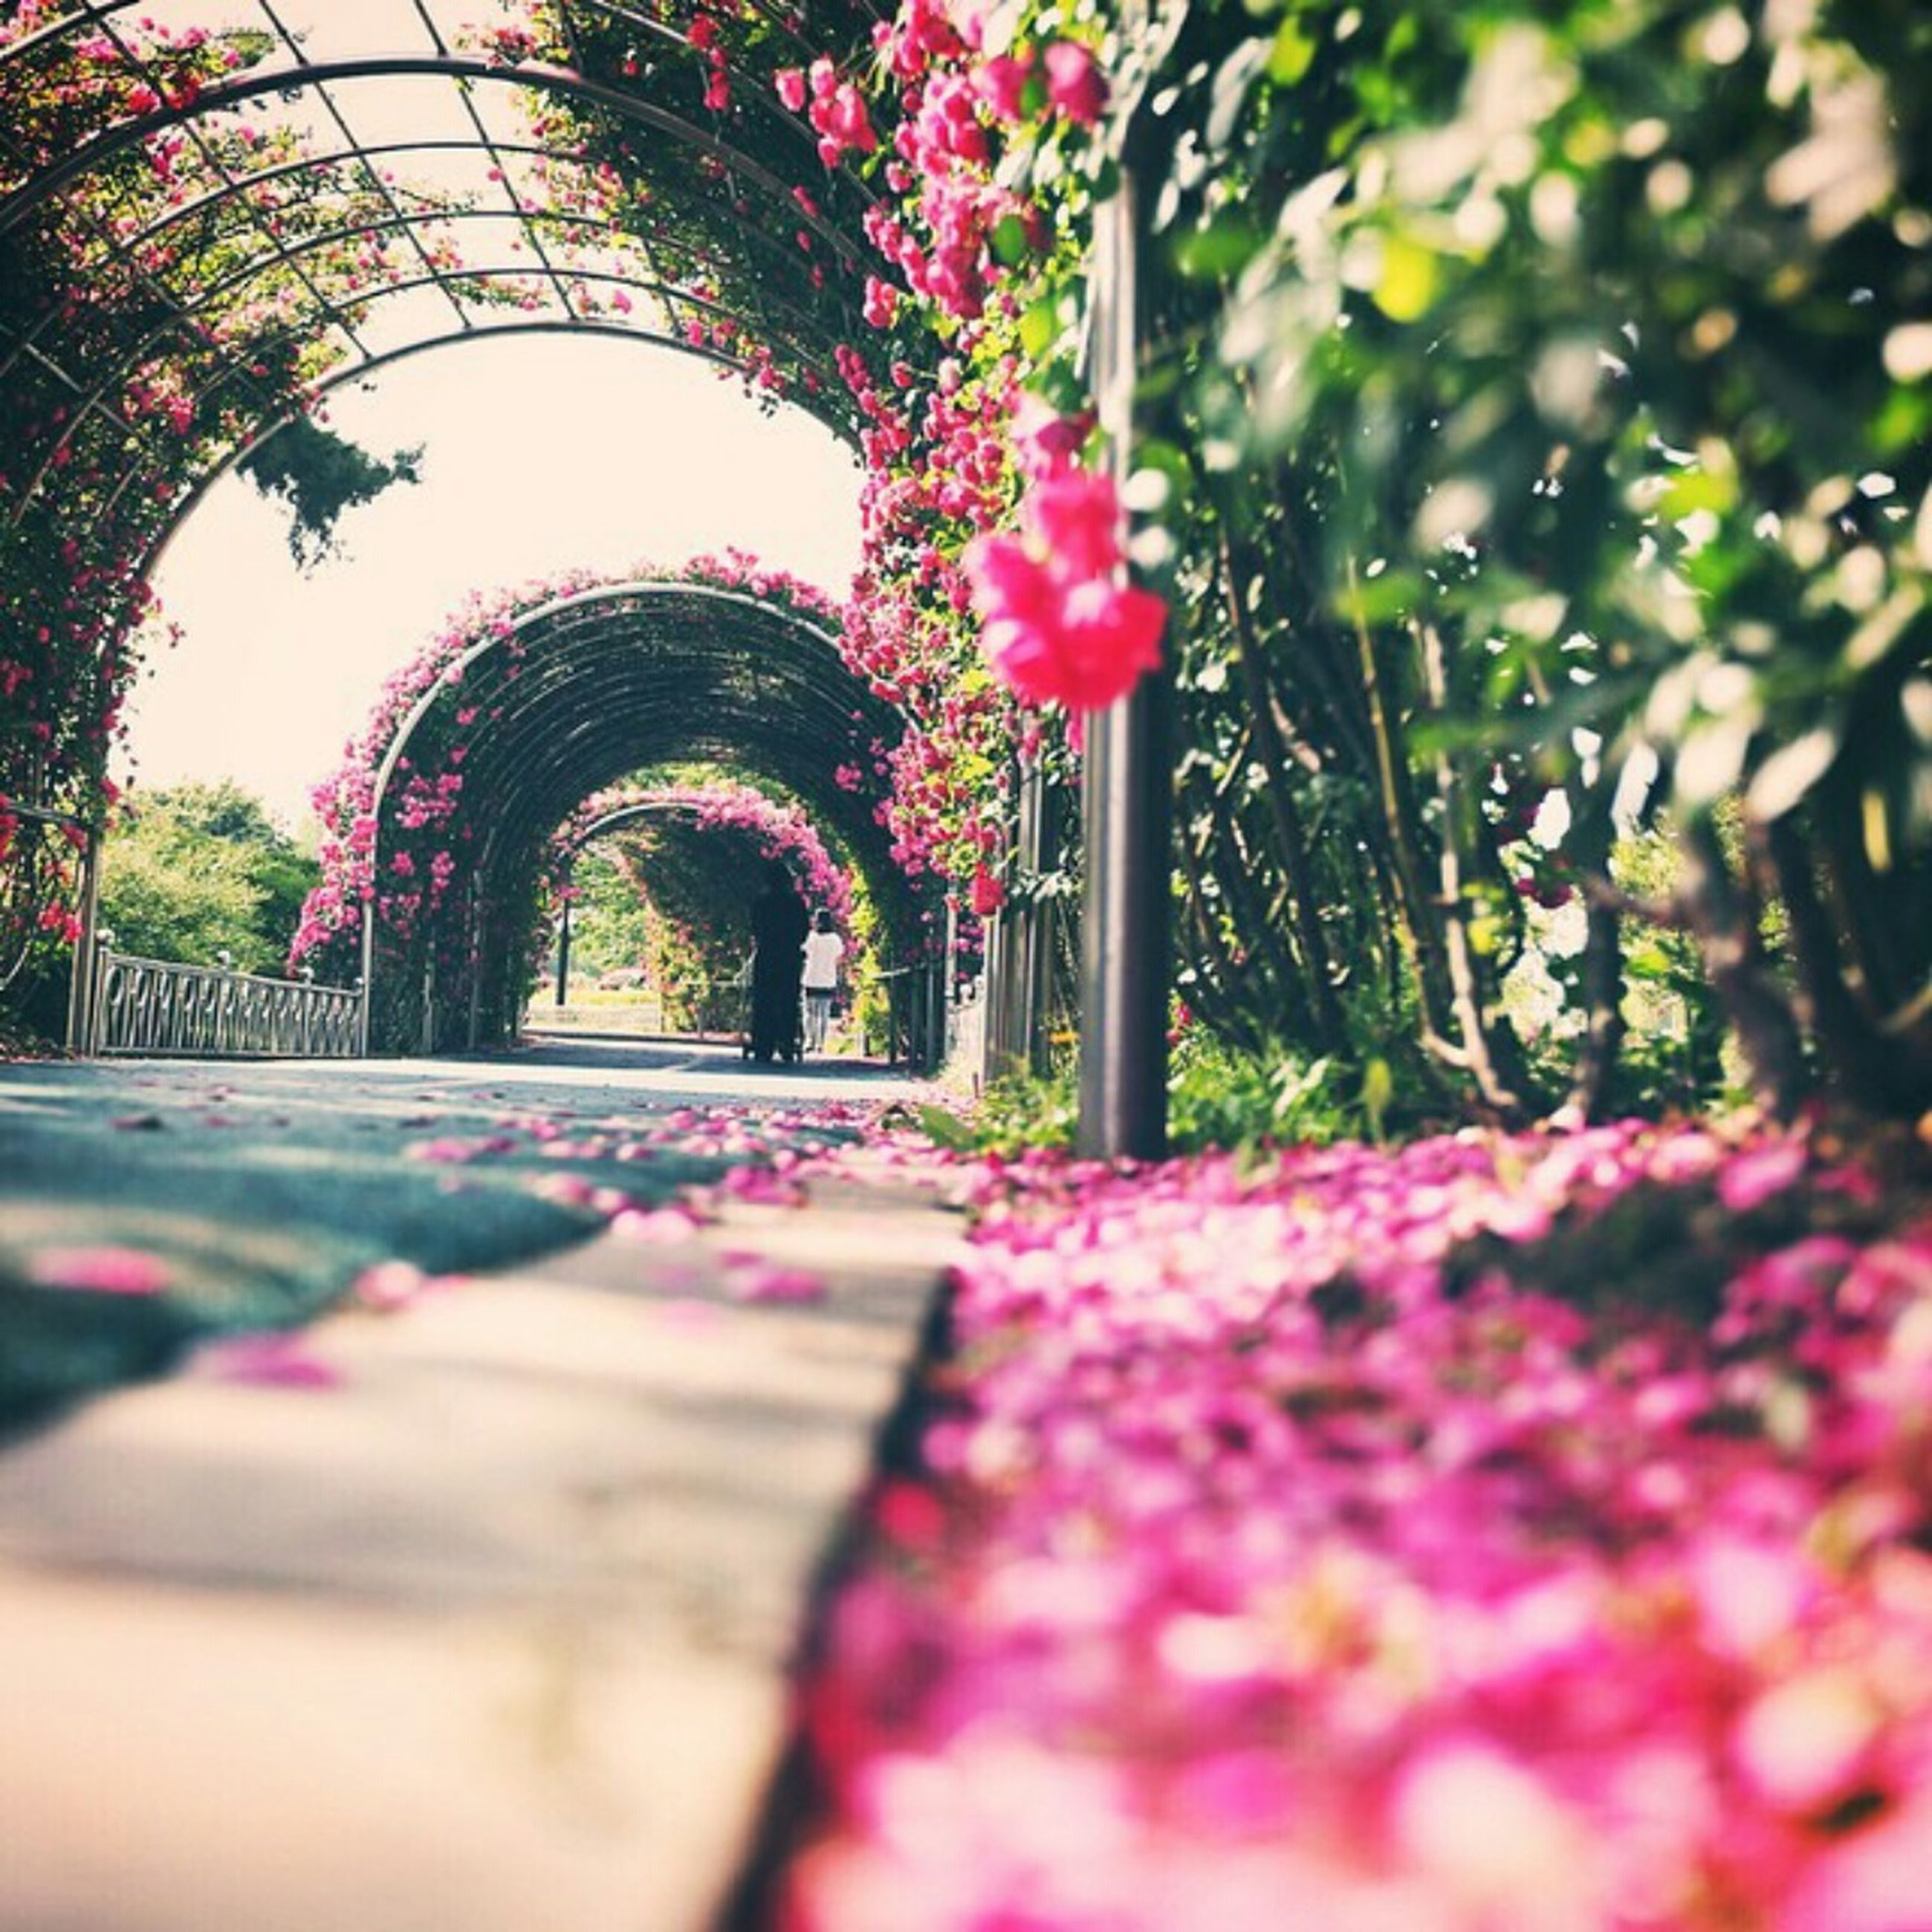 tree, flower, pink color, park - man made space, growth, surface level, selective focus, the way forward, plant, nature, day, footpath, arch, sunlight, outdoors, empty, bench, freshness, no people, walkway